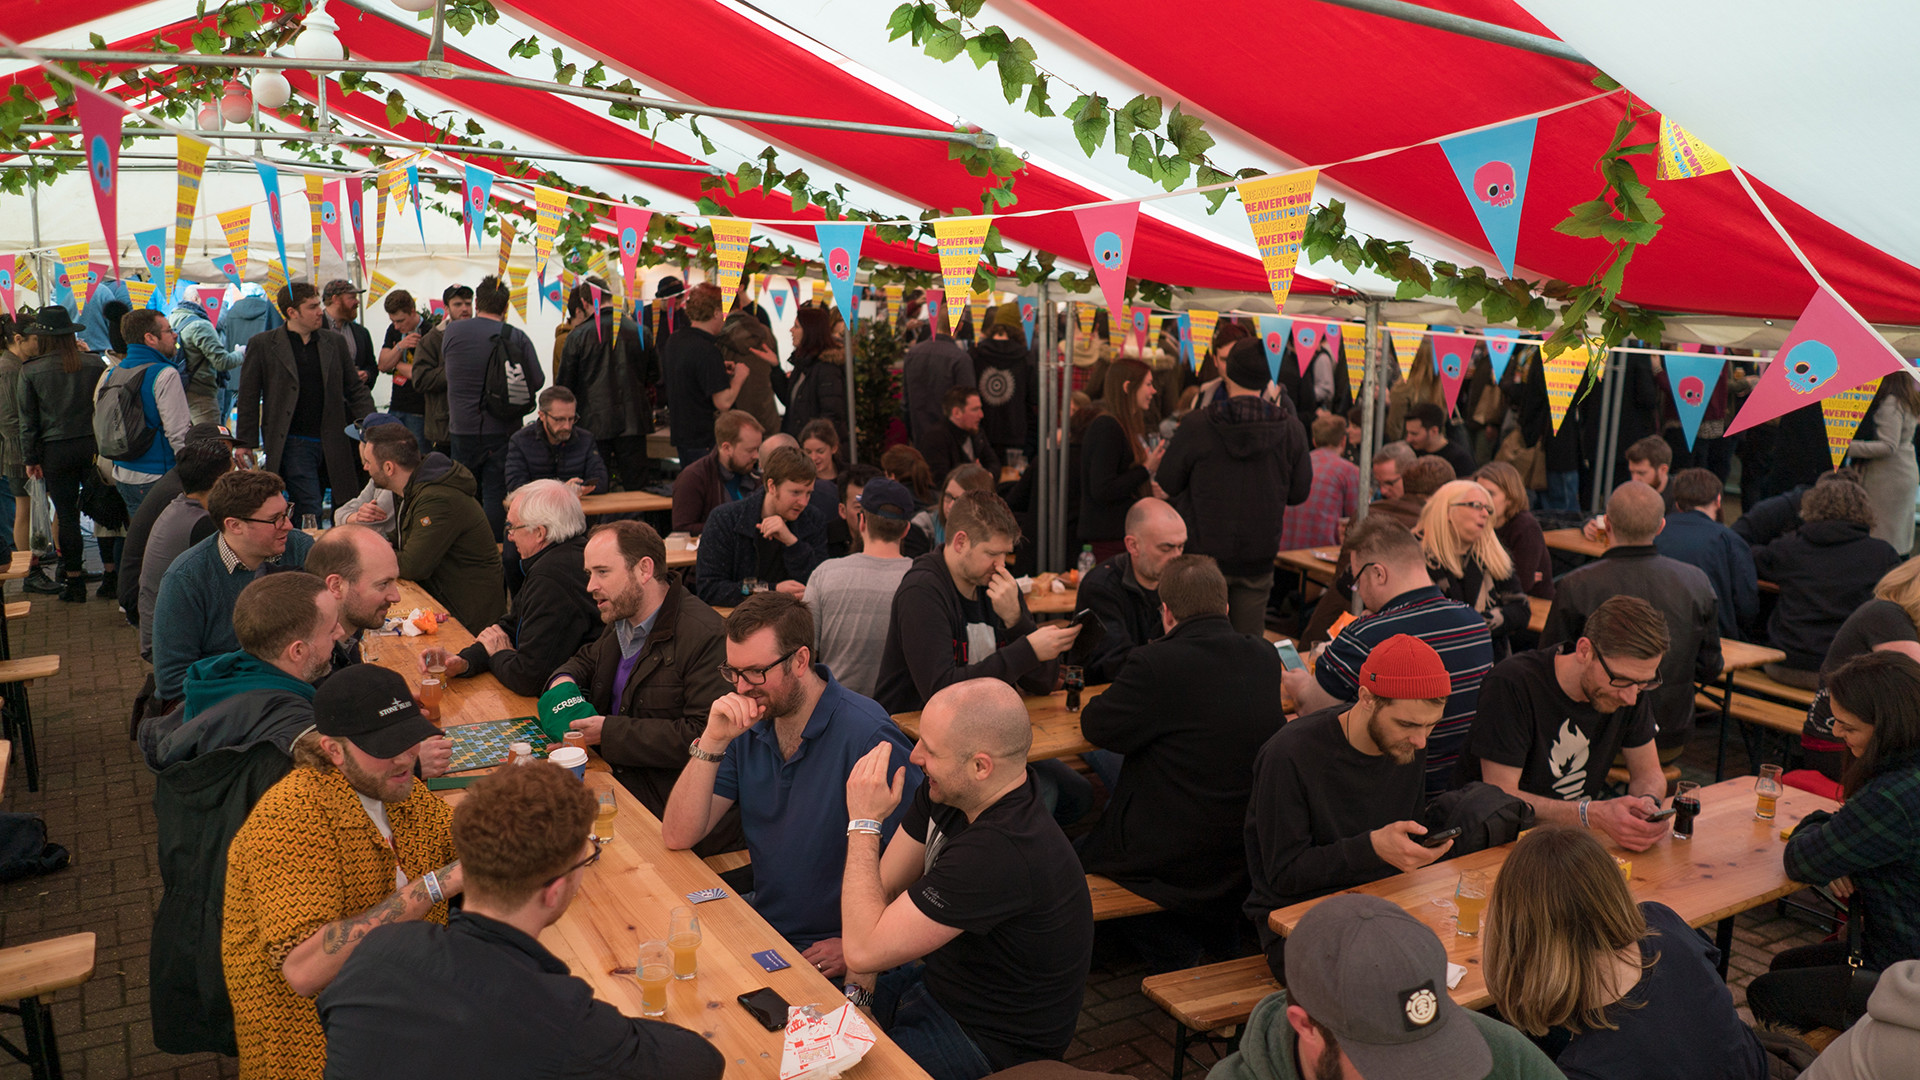 Beavertown Summer in the City